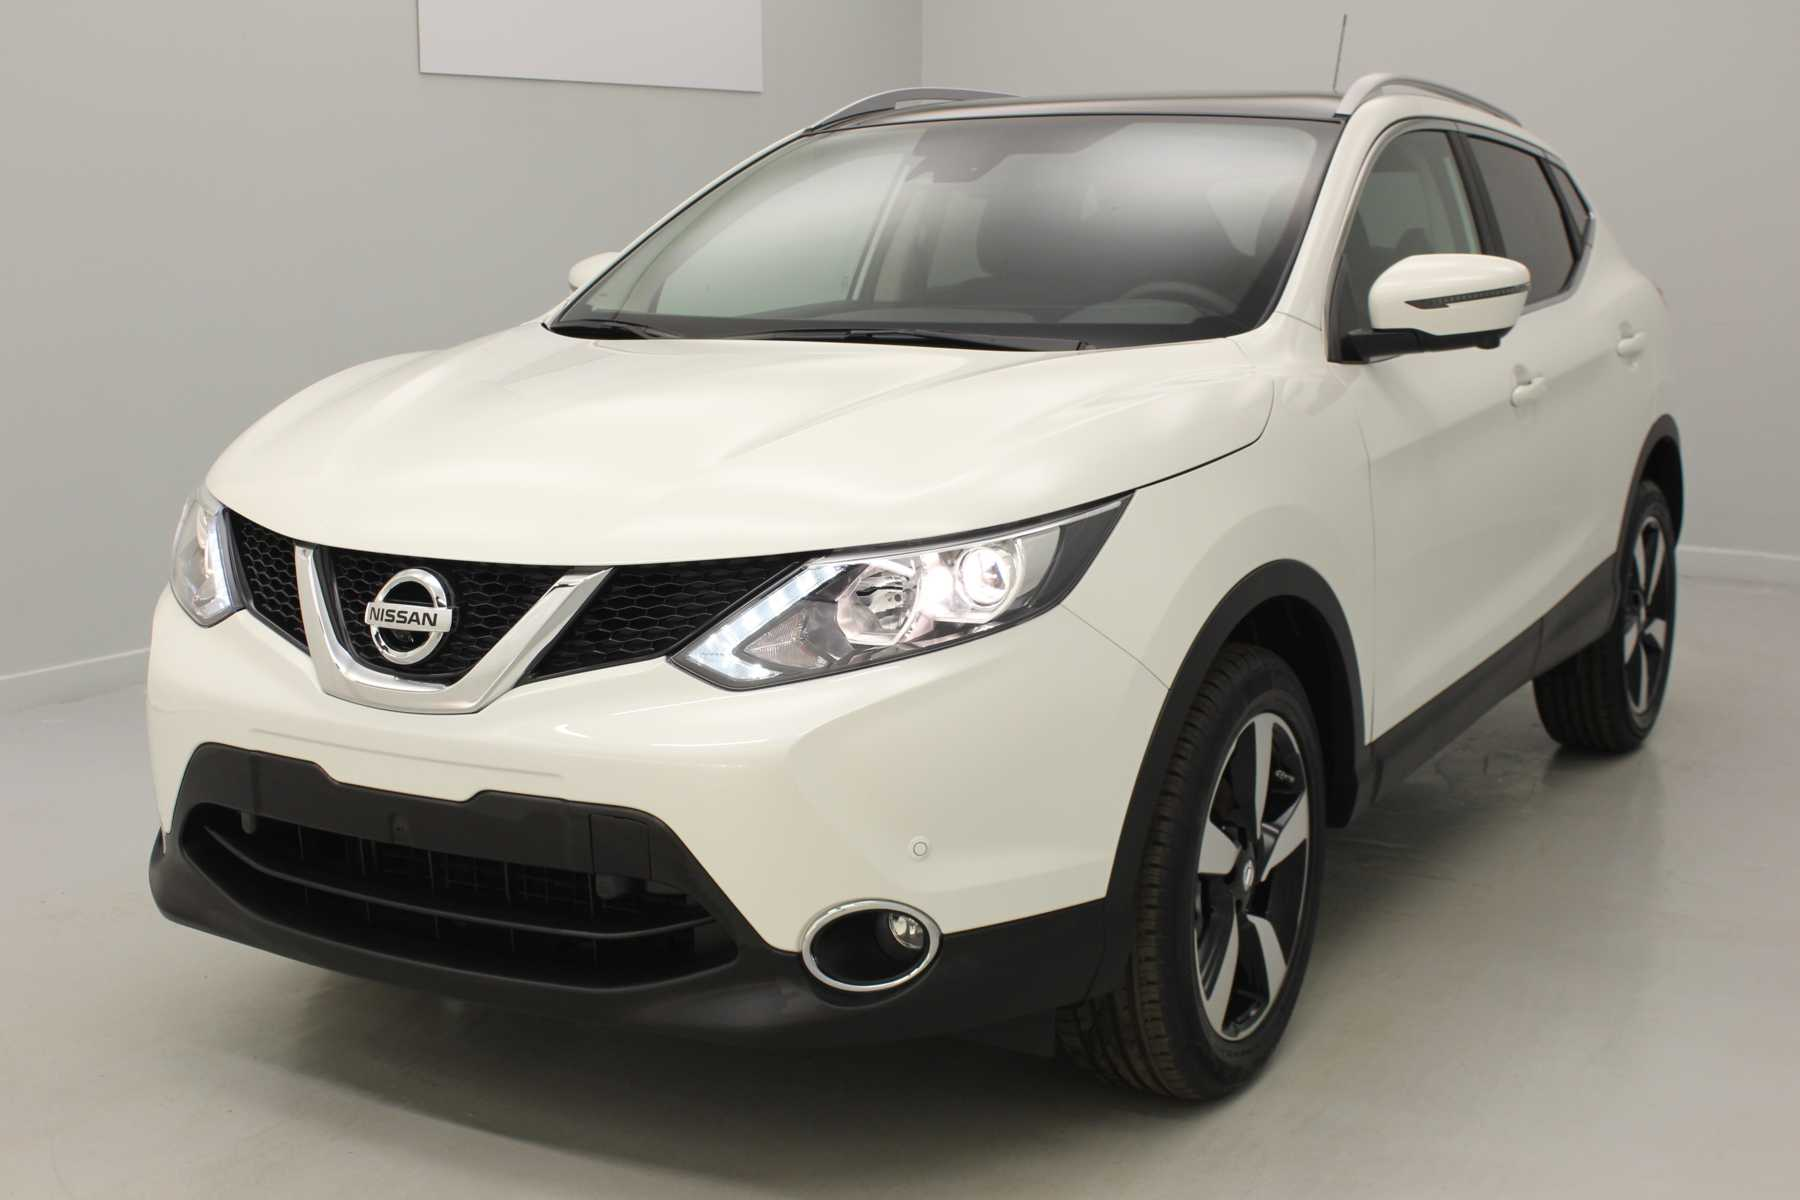 NISSAN Qashqai 1.5 dCi 110 N-Connecta Blanc Lunaire + Pack Design avec options